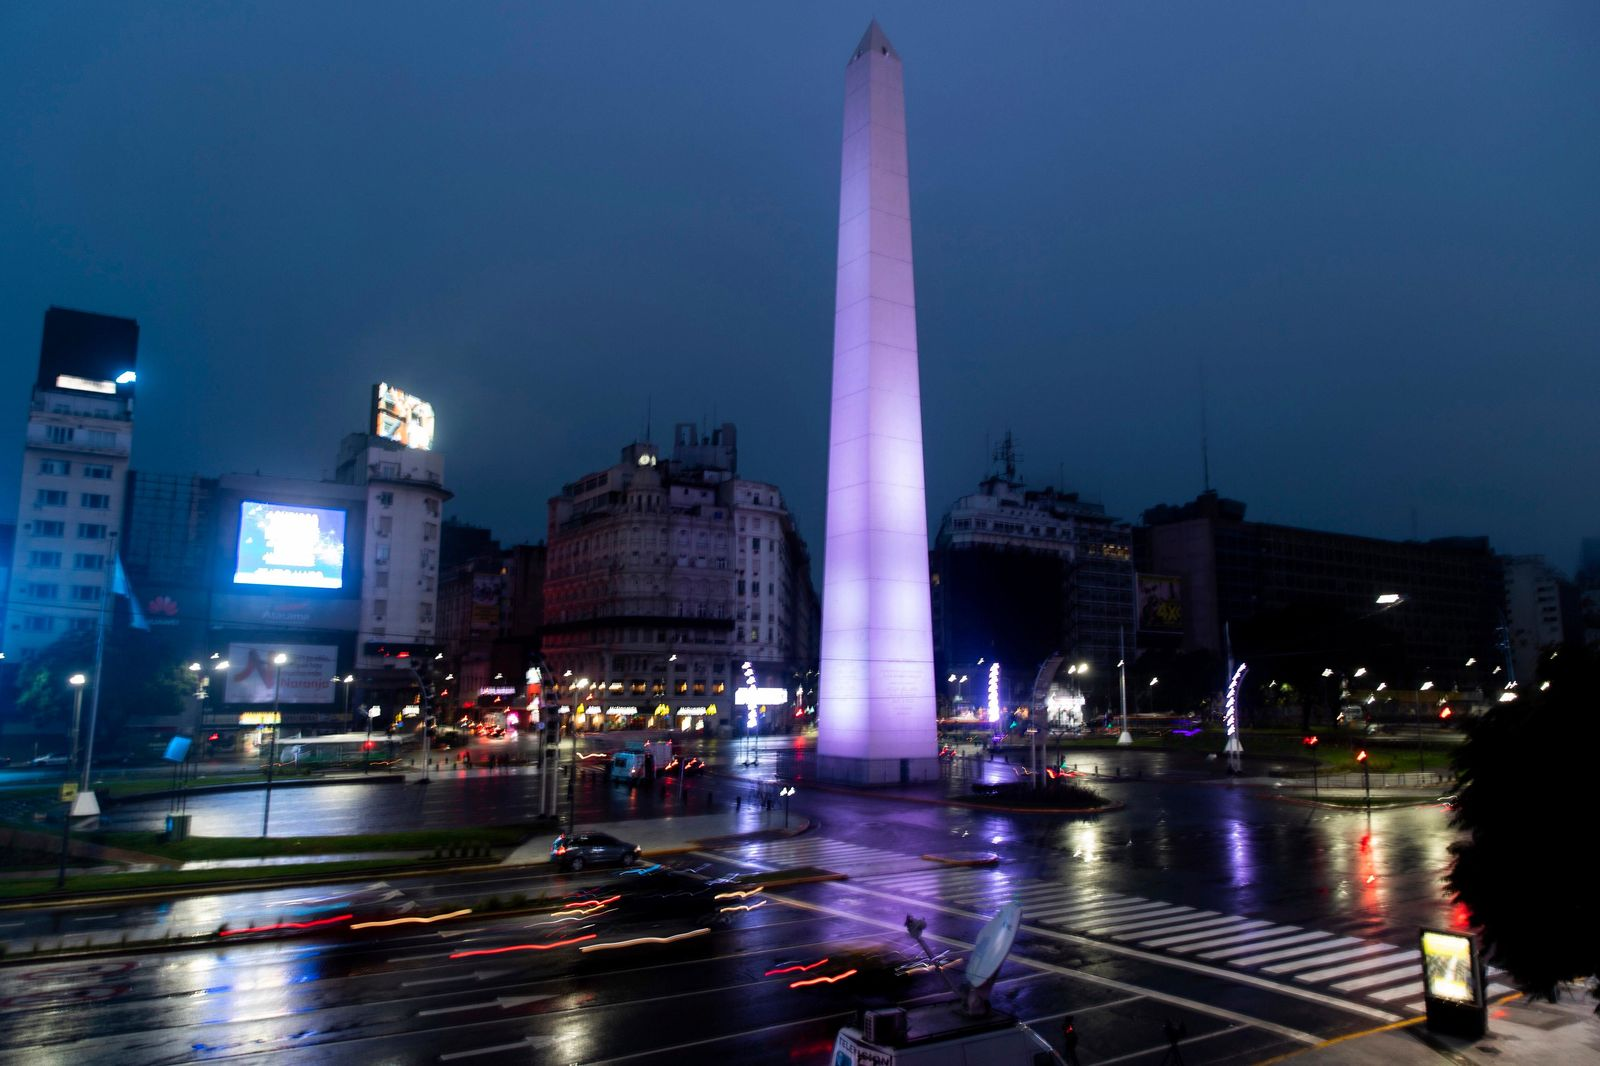 Cars drive on the 9 de Julio Ave, past the illuminated Obelisk monument in Buenos Aires, Argentina, early Monday morning, June 17, 2019. As lights turned back on across Argentina, Uruguay and Paraguay after a massive blackout that hit tens of millions people, authorities were still largely in the dark about what caused the collapse of the interconnected grid and were tallying the damage from the unforeseen disaster. (AP Photo/Tomas F. Cuesta)